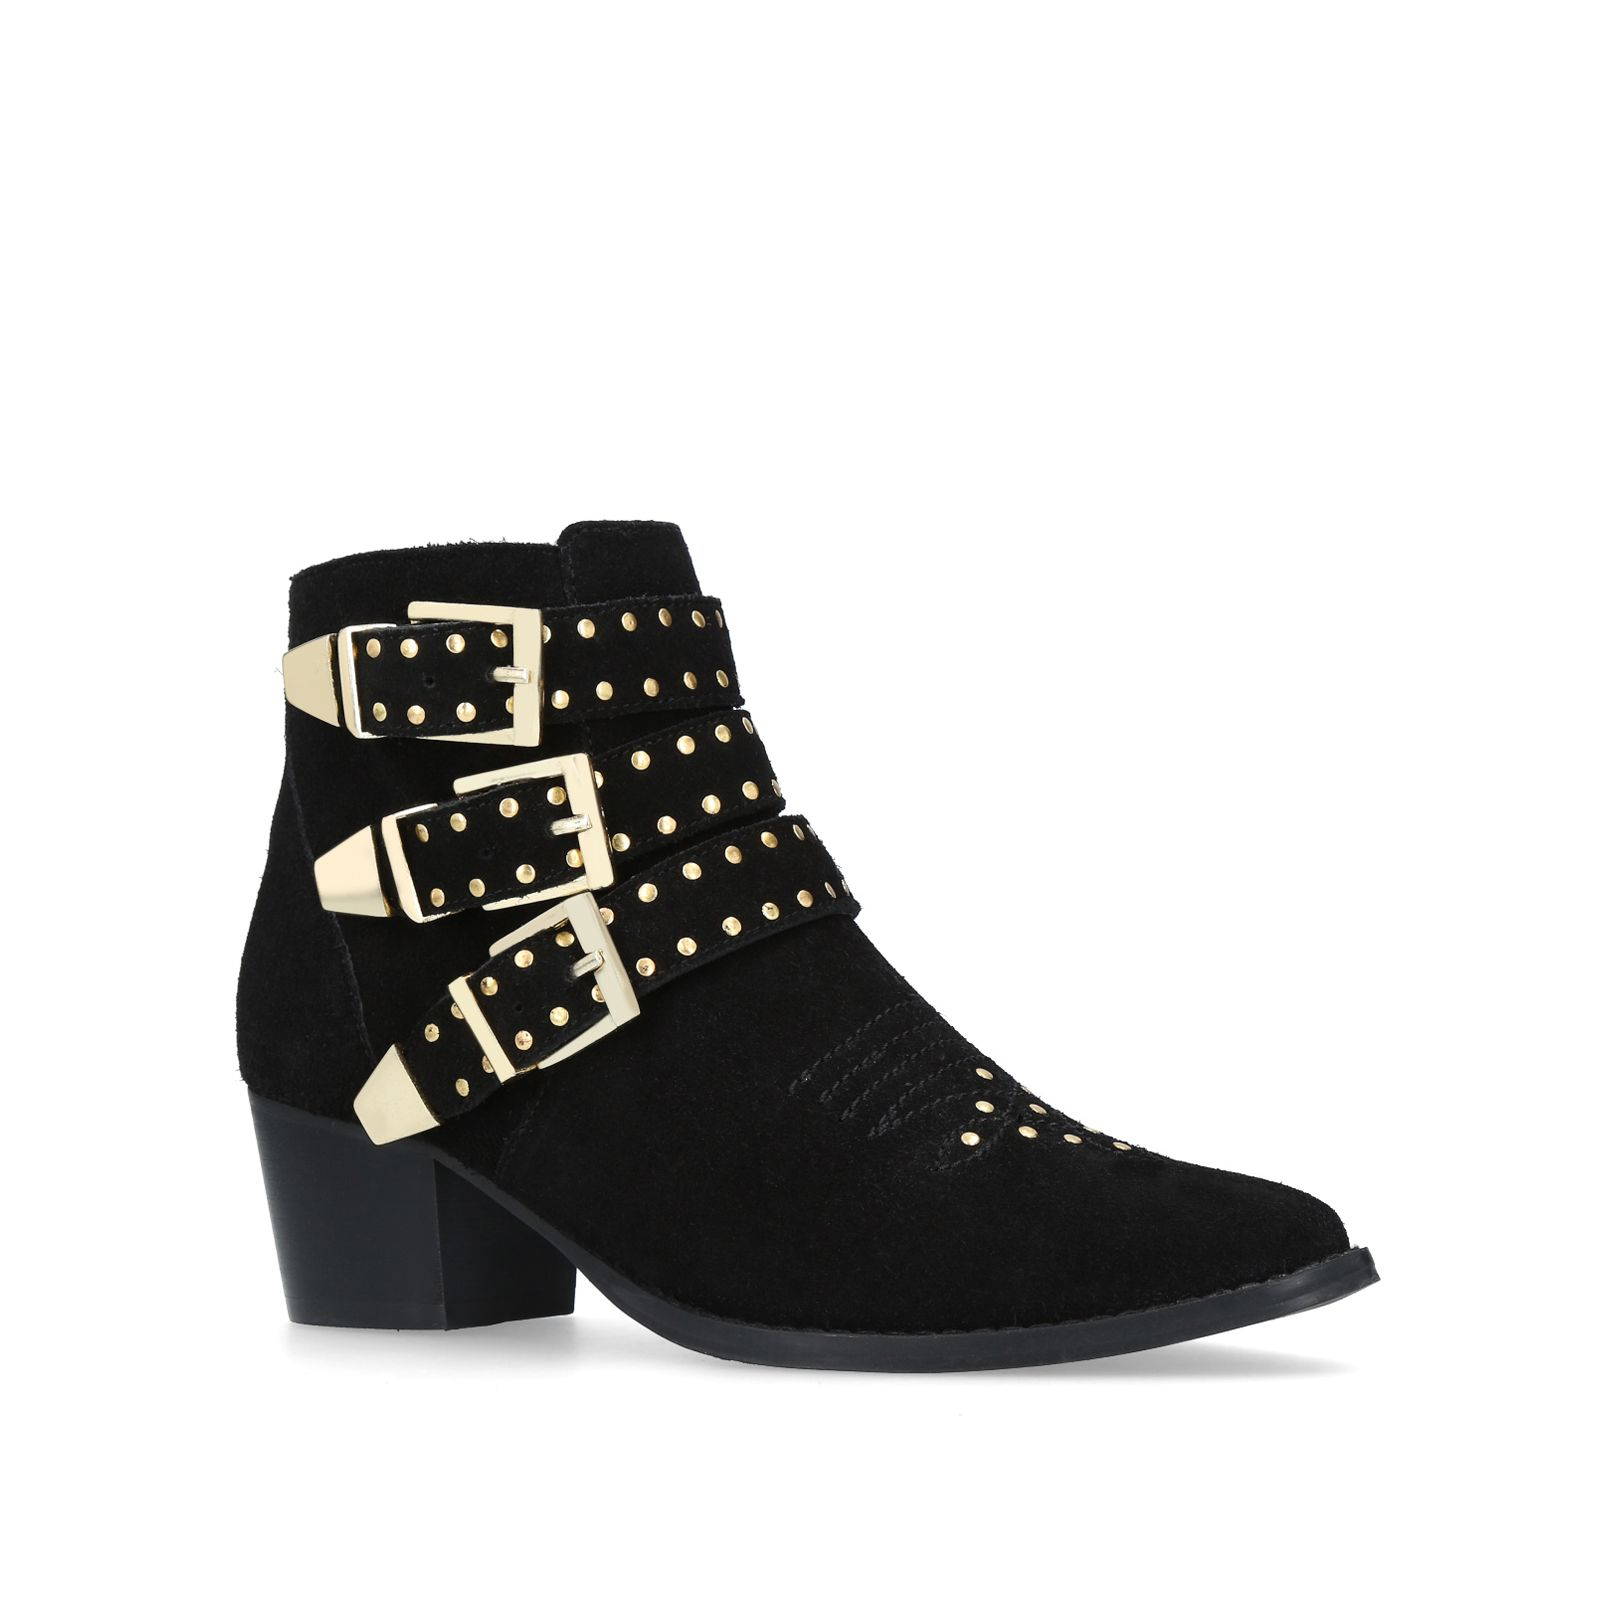 KG Ankle Boots